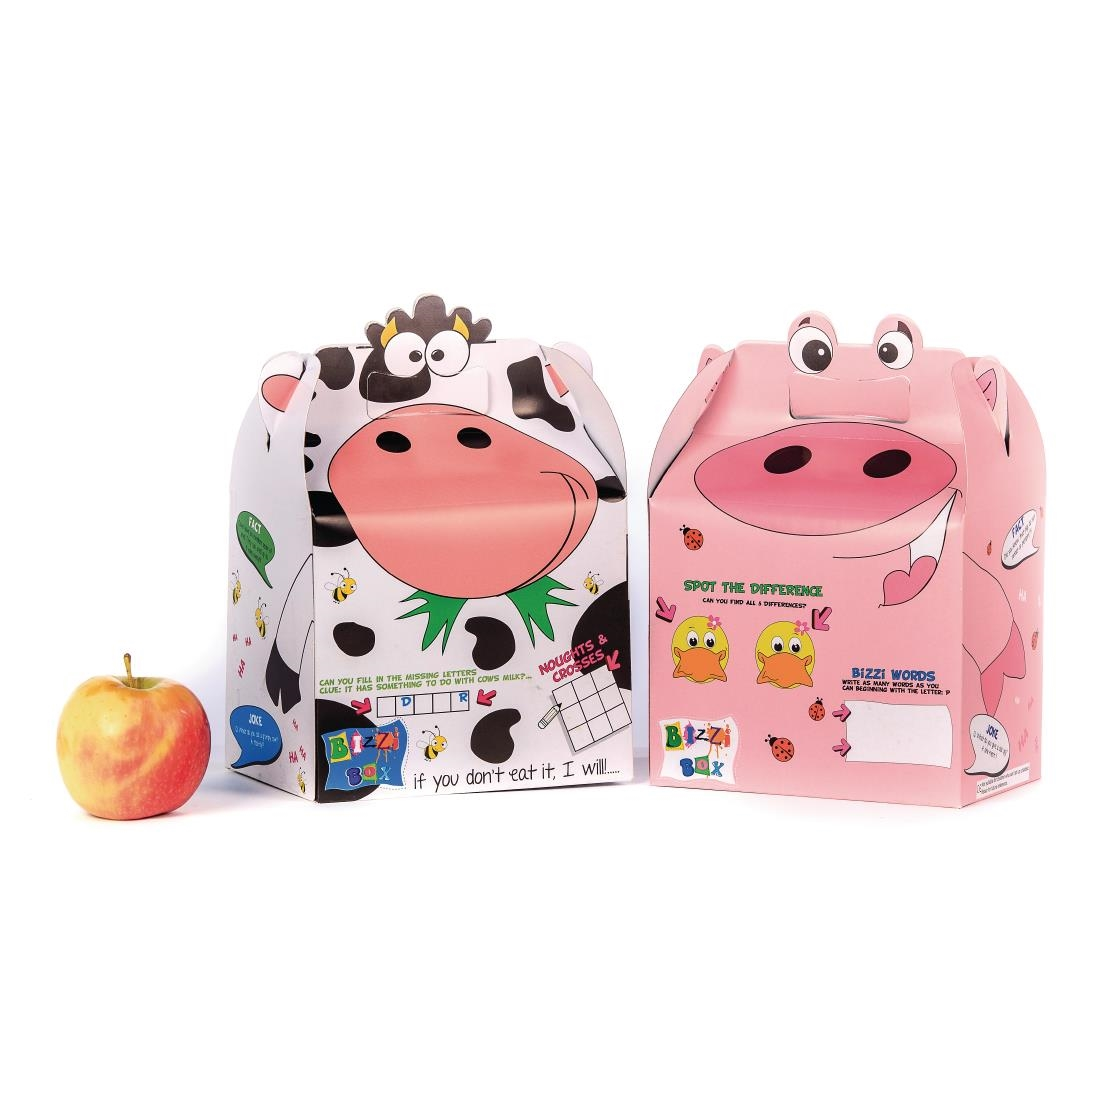 Image of Craftis Kids Bizzi Boxes Assorted Farm Animals (Pack of 200) Pack of 200